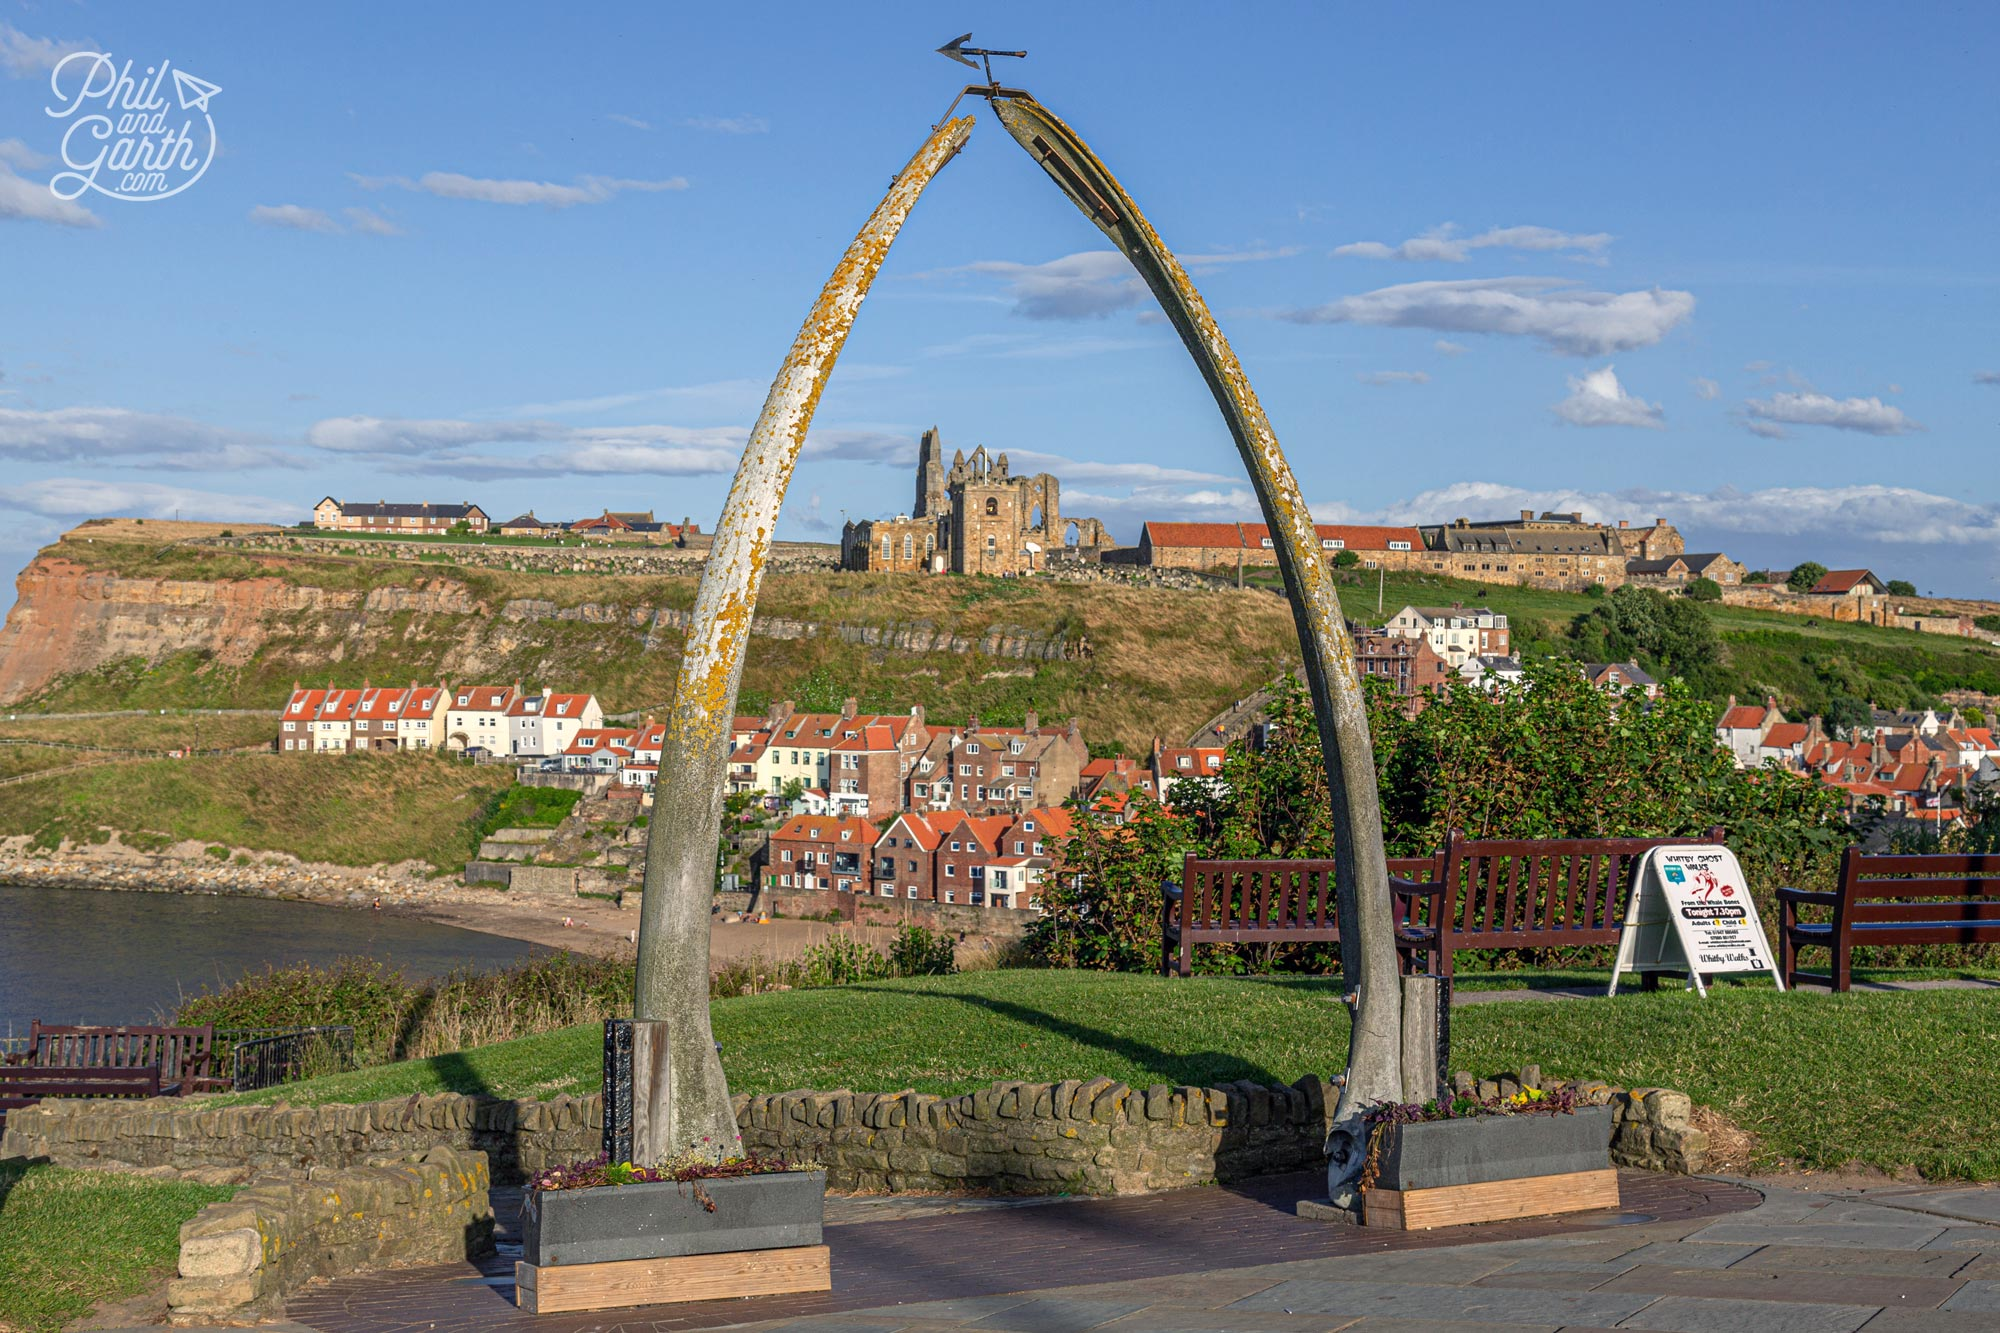 Whitby's iconic Whale Bone Arch is a monument to the towns maritime heritage